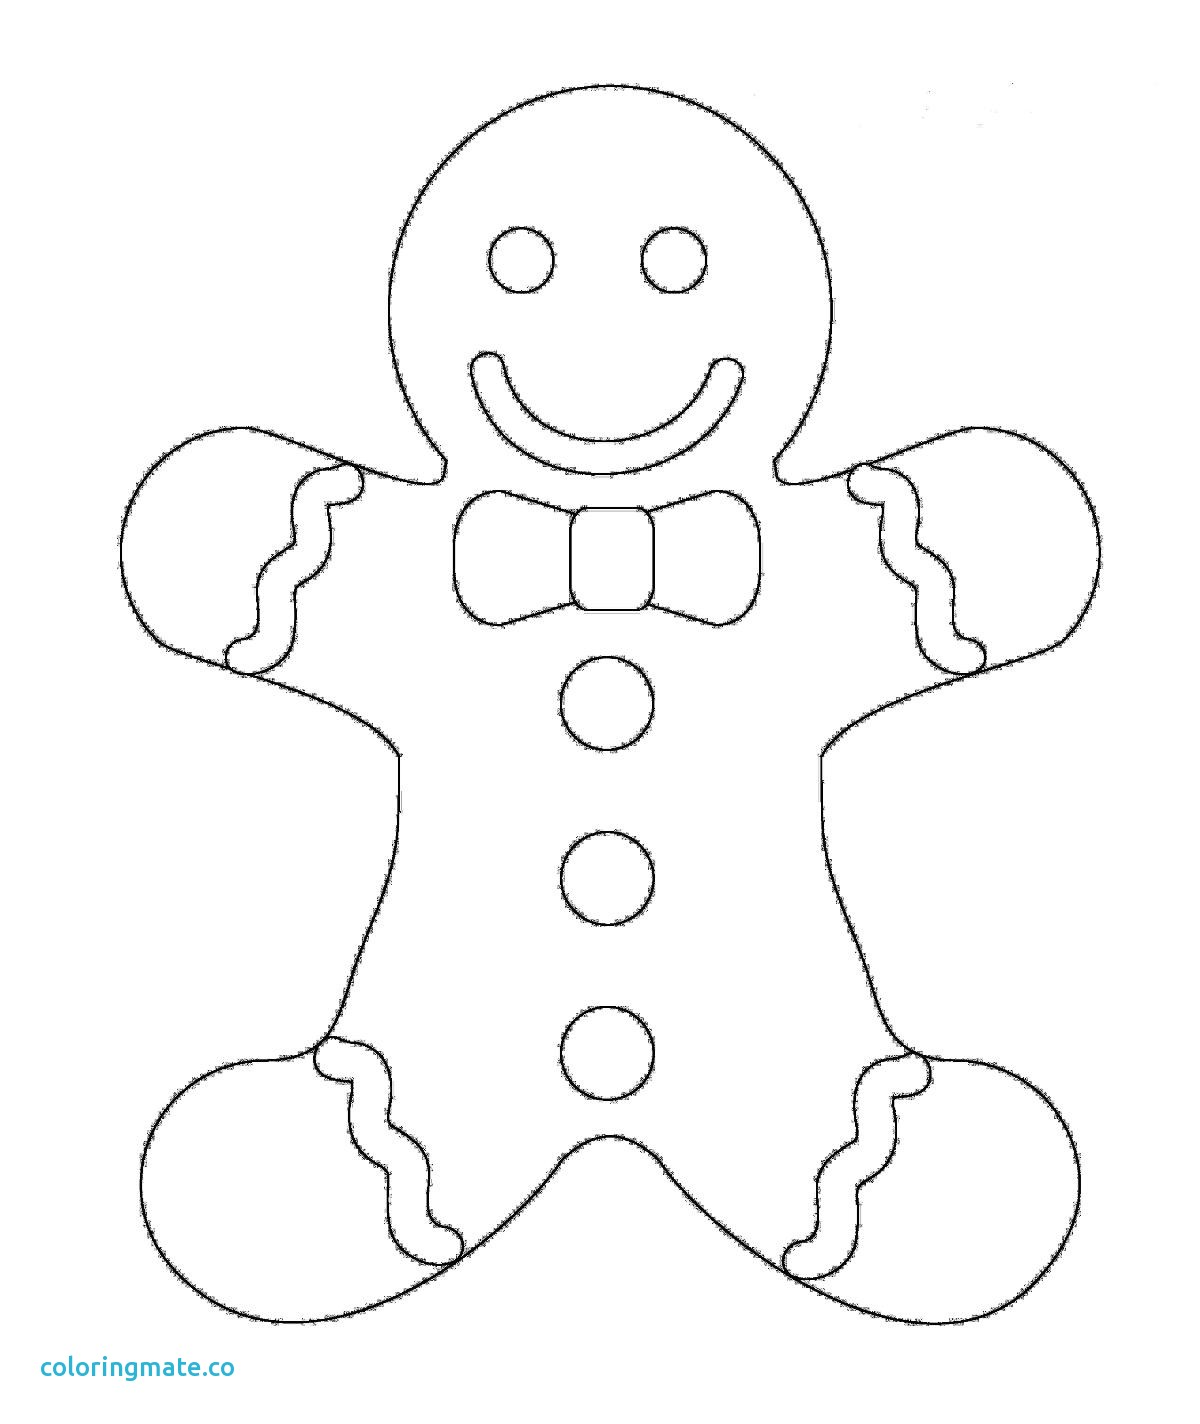 blank gingerbread man coloring page gingerbread man coloring page free download on clipartmag gingerbread coloring page man blank